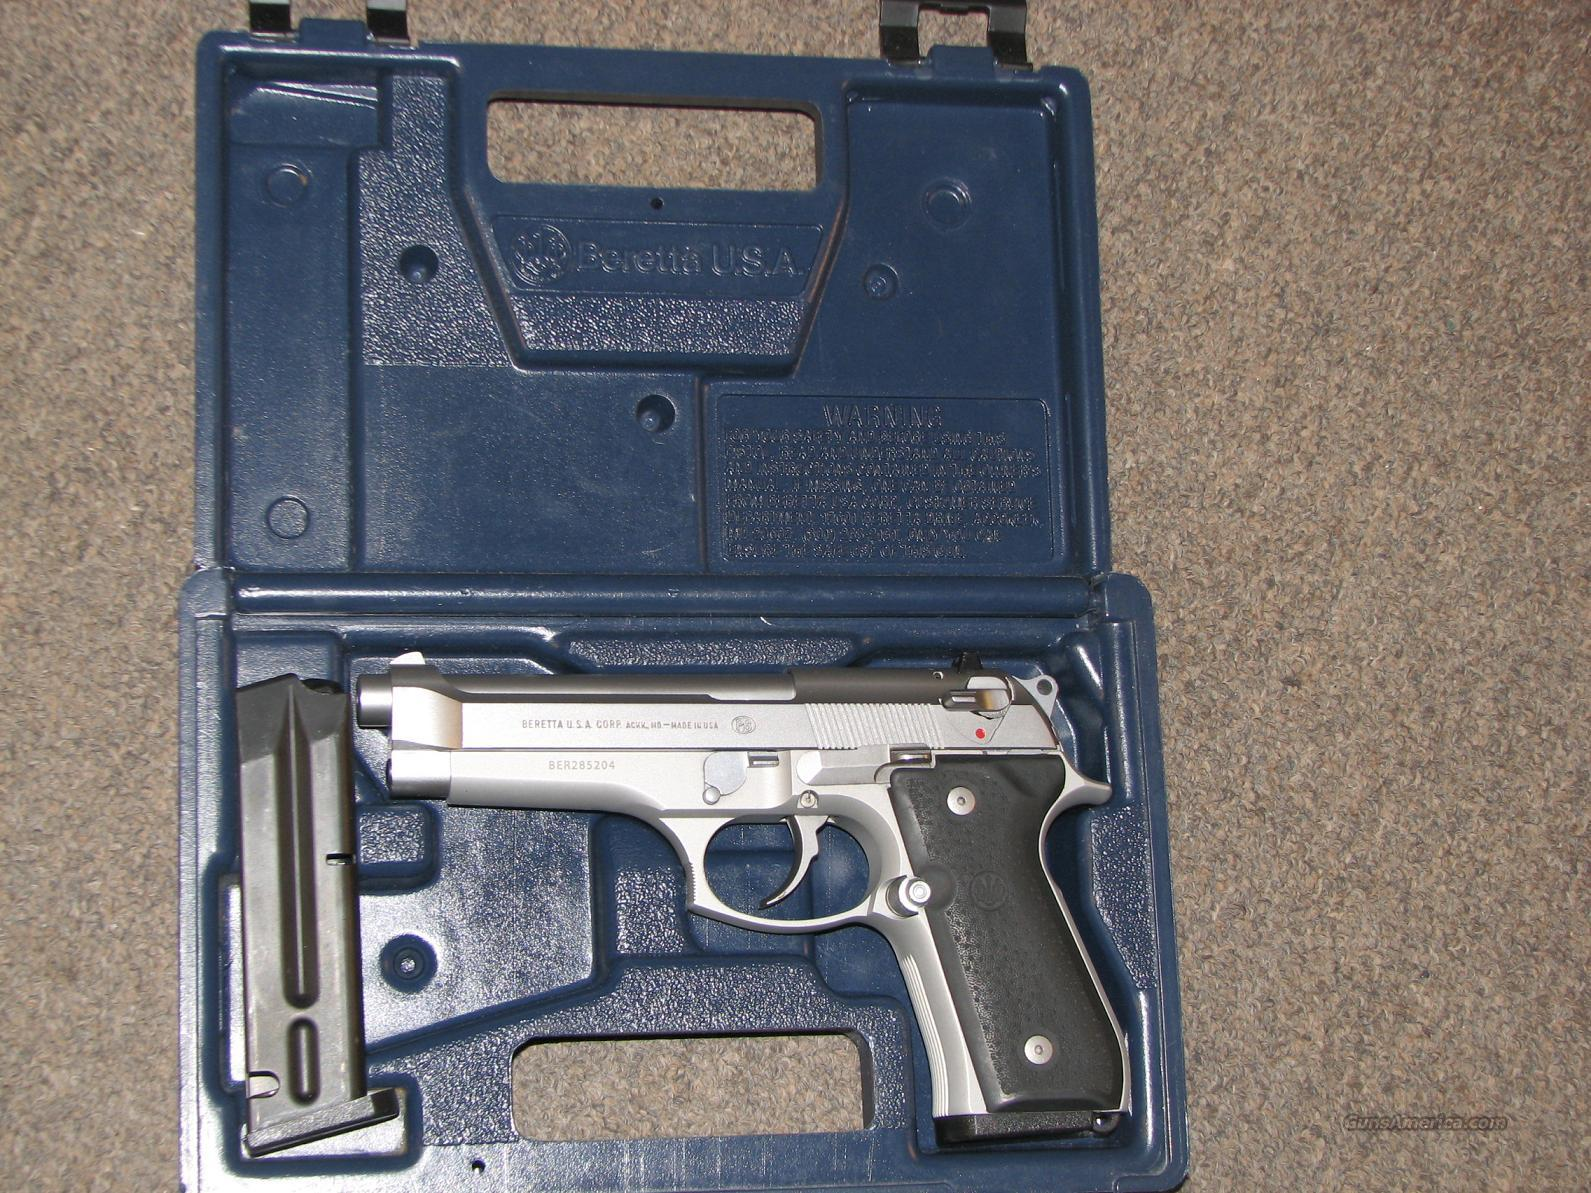 BERETTA 92 FS STAINLESS 9mm  Guns > Pistols > Beretta Pistols > Model 92 Series